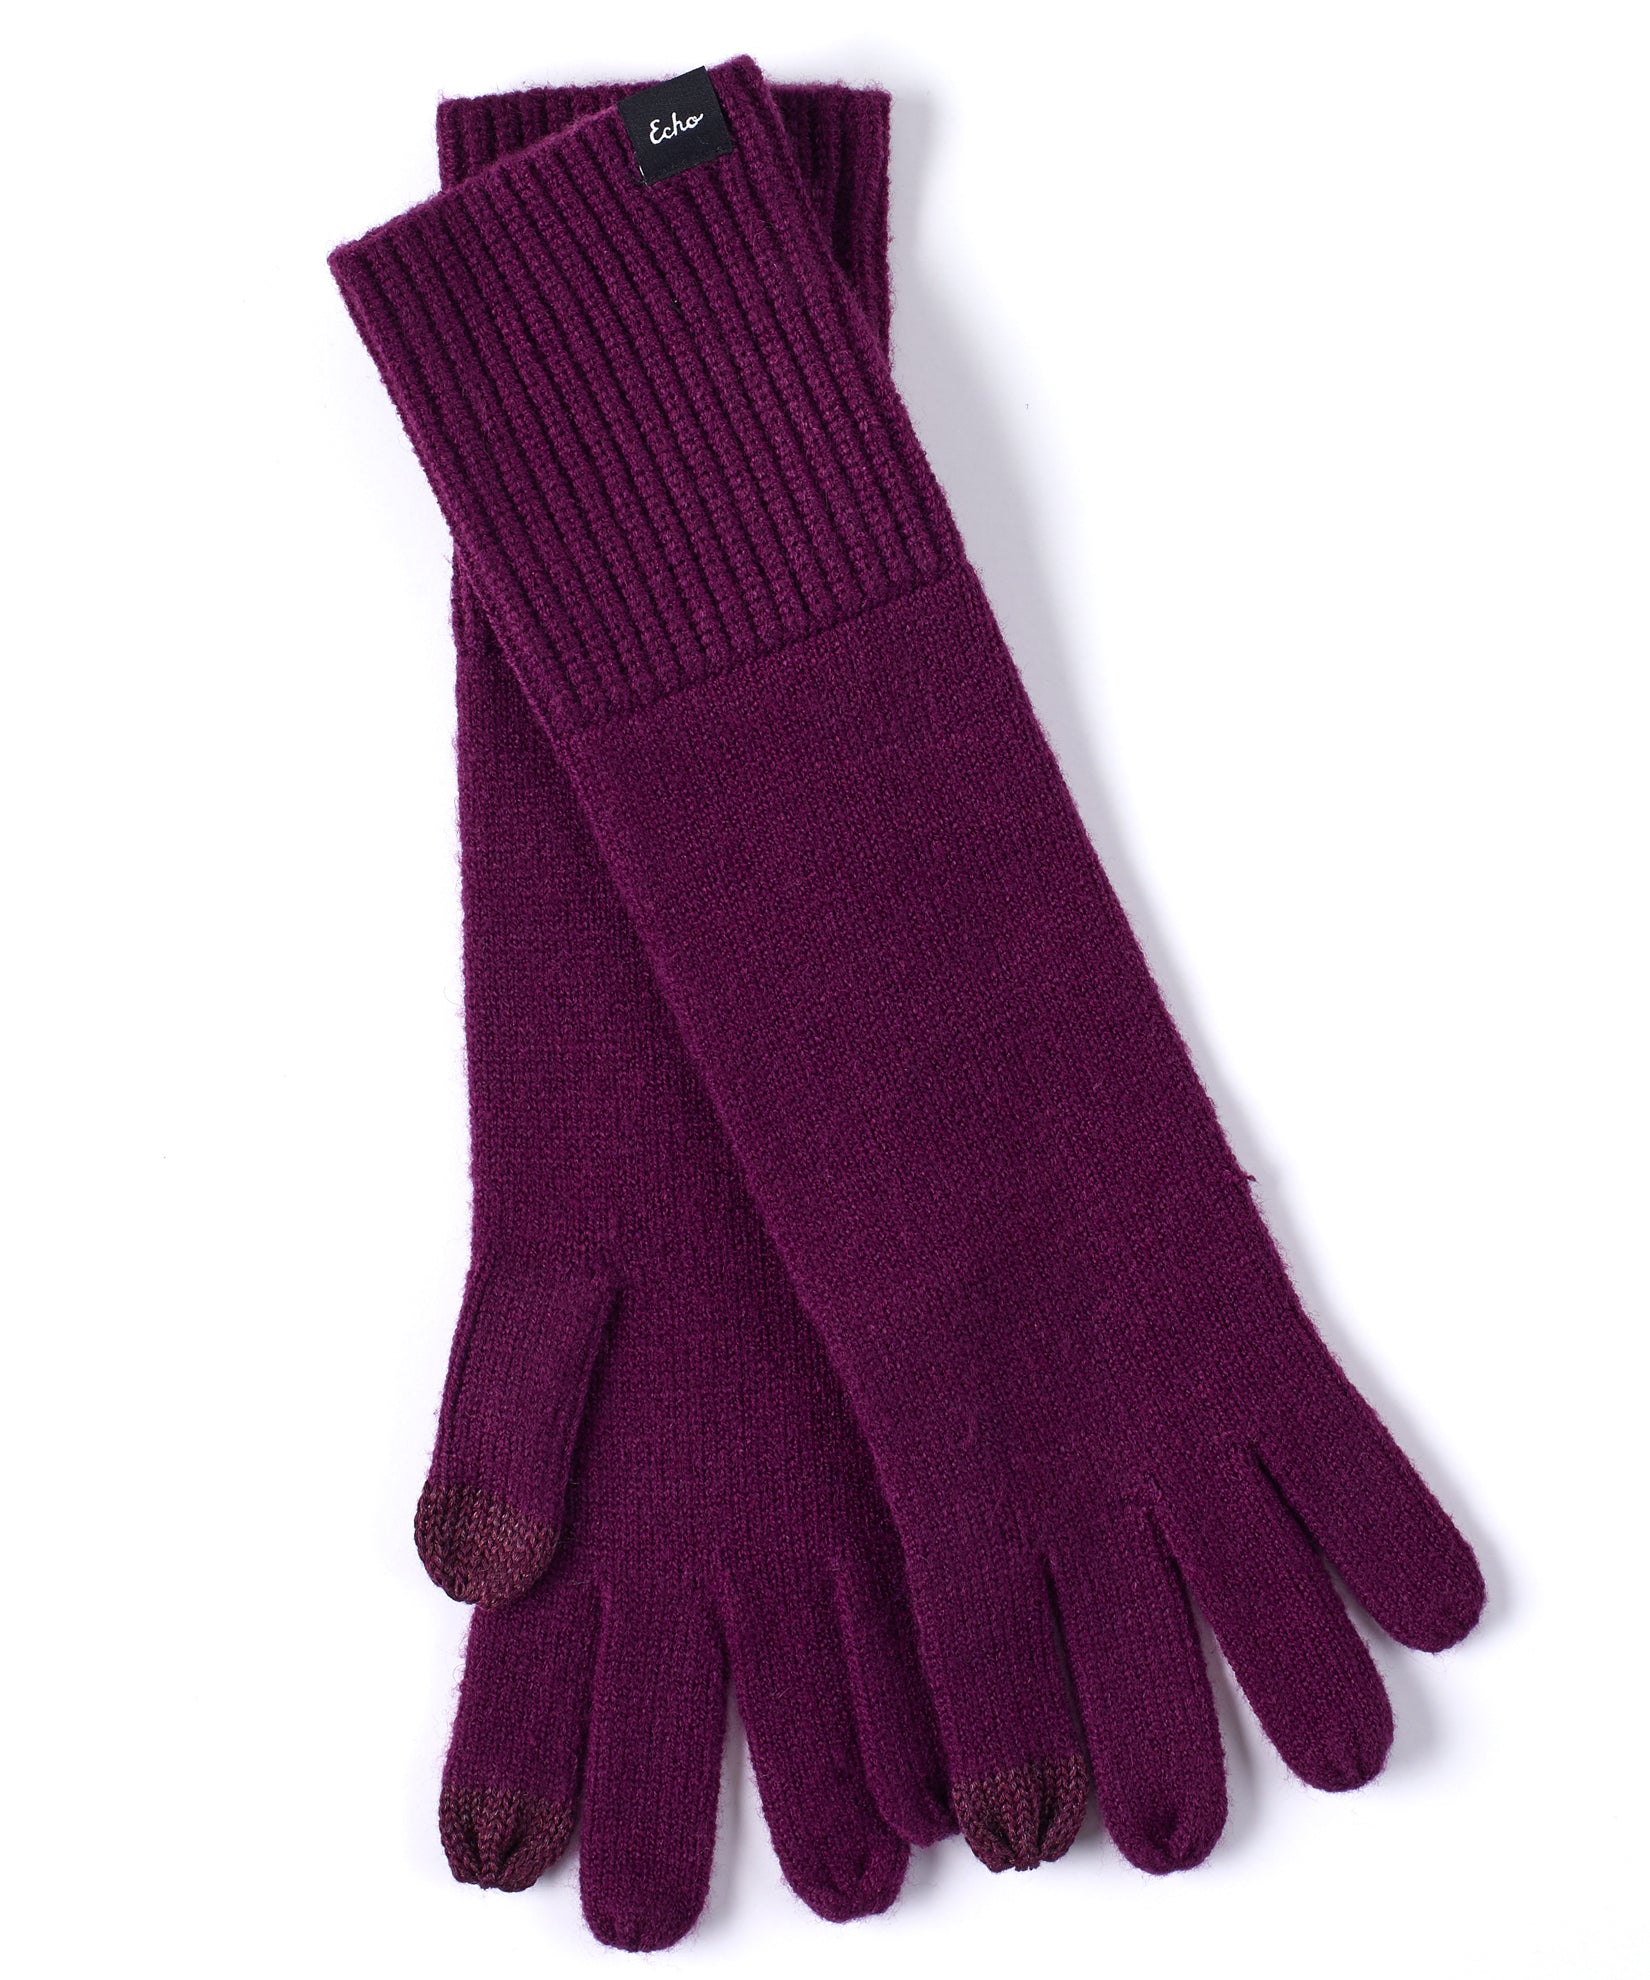 Pickled Beet - Active Stretch Glove